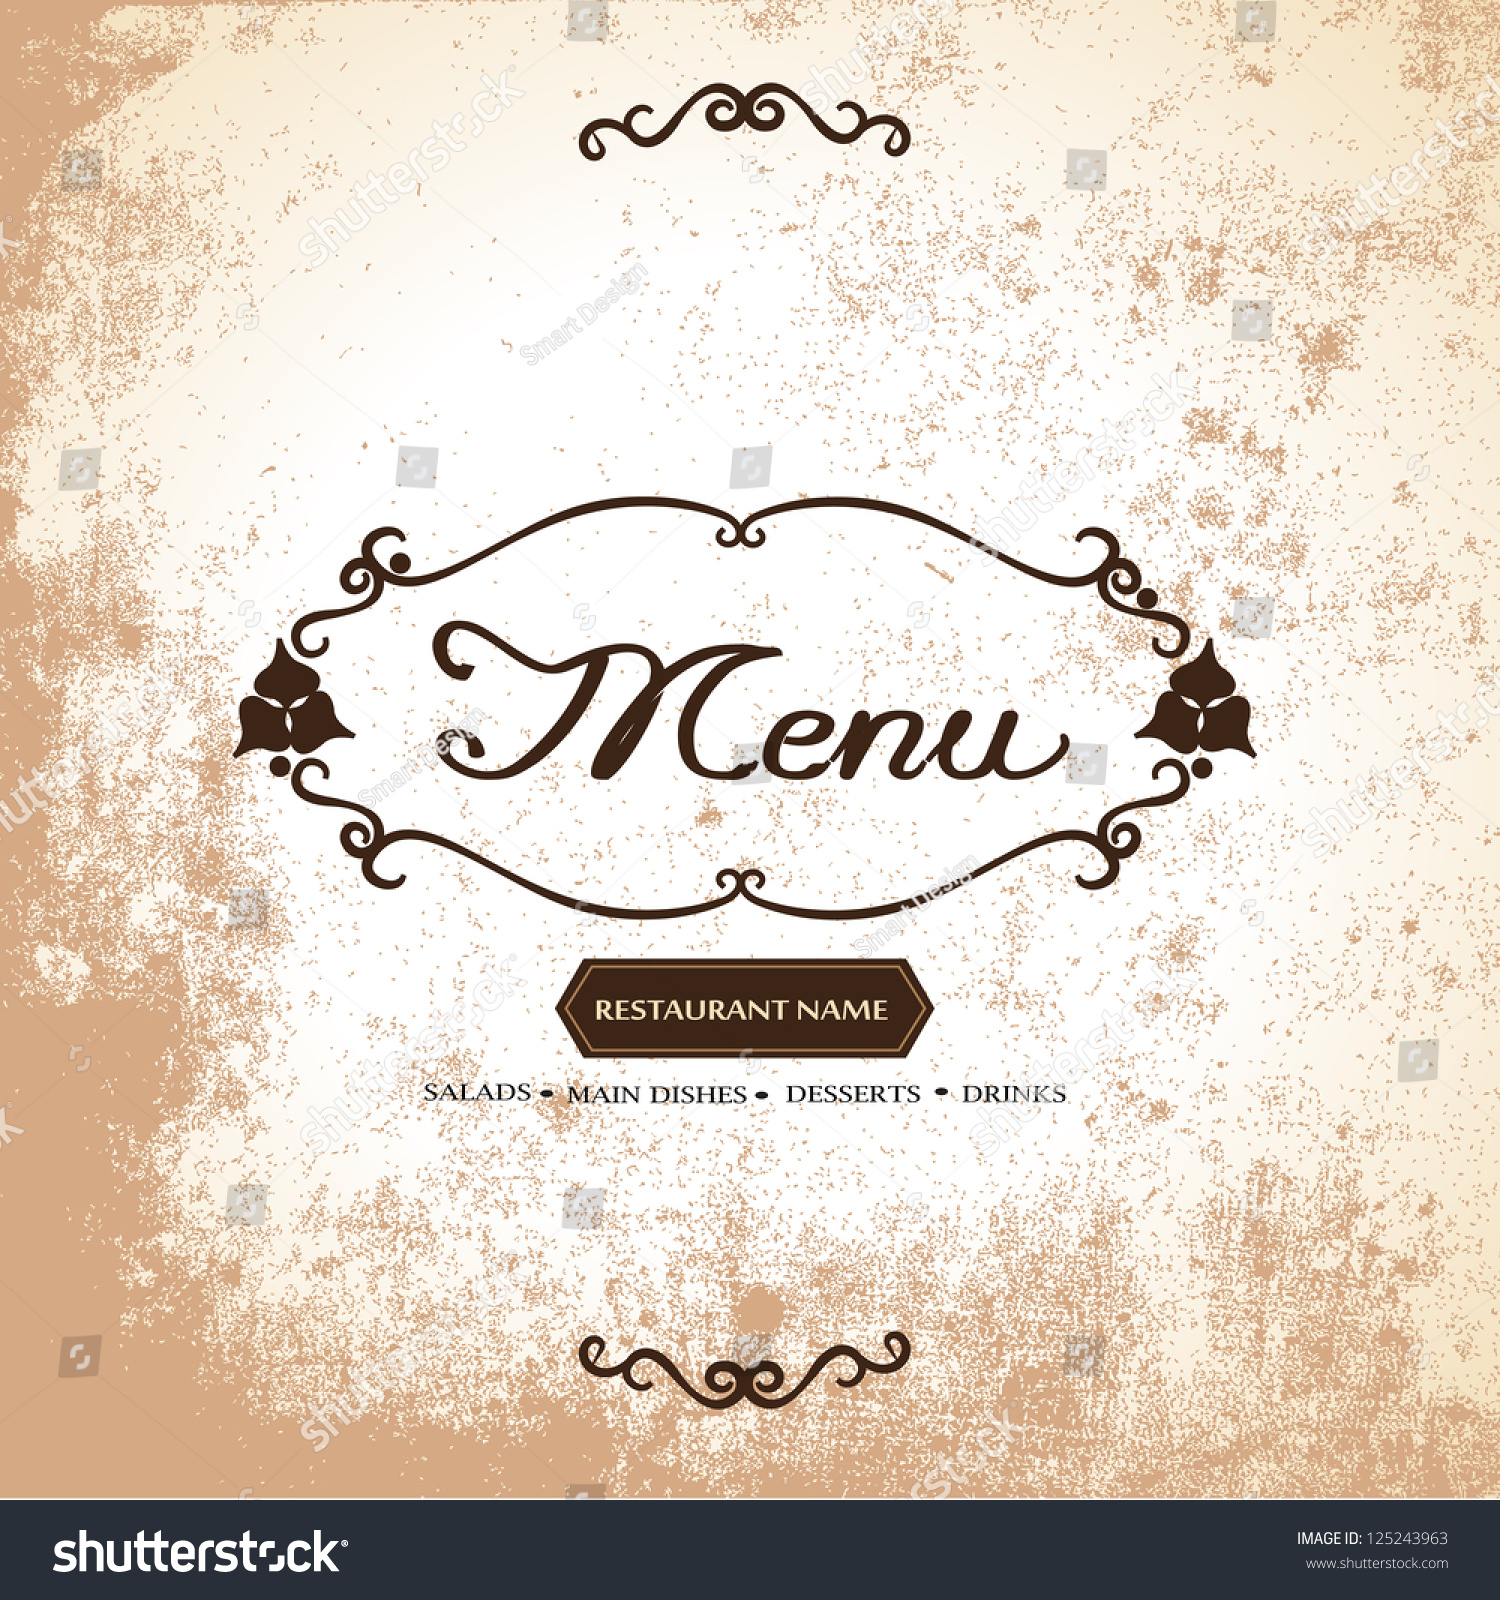 Restaurant Menu Card - Vector illustrator, Graphic Design. Vintage ...